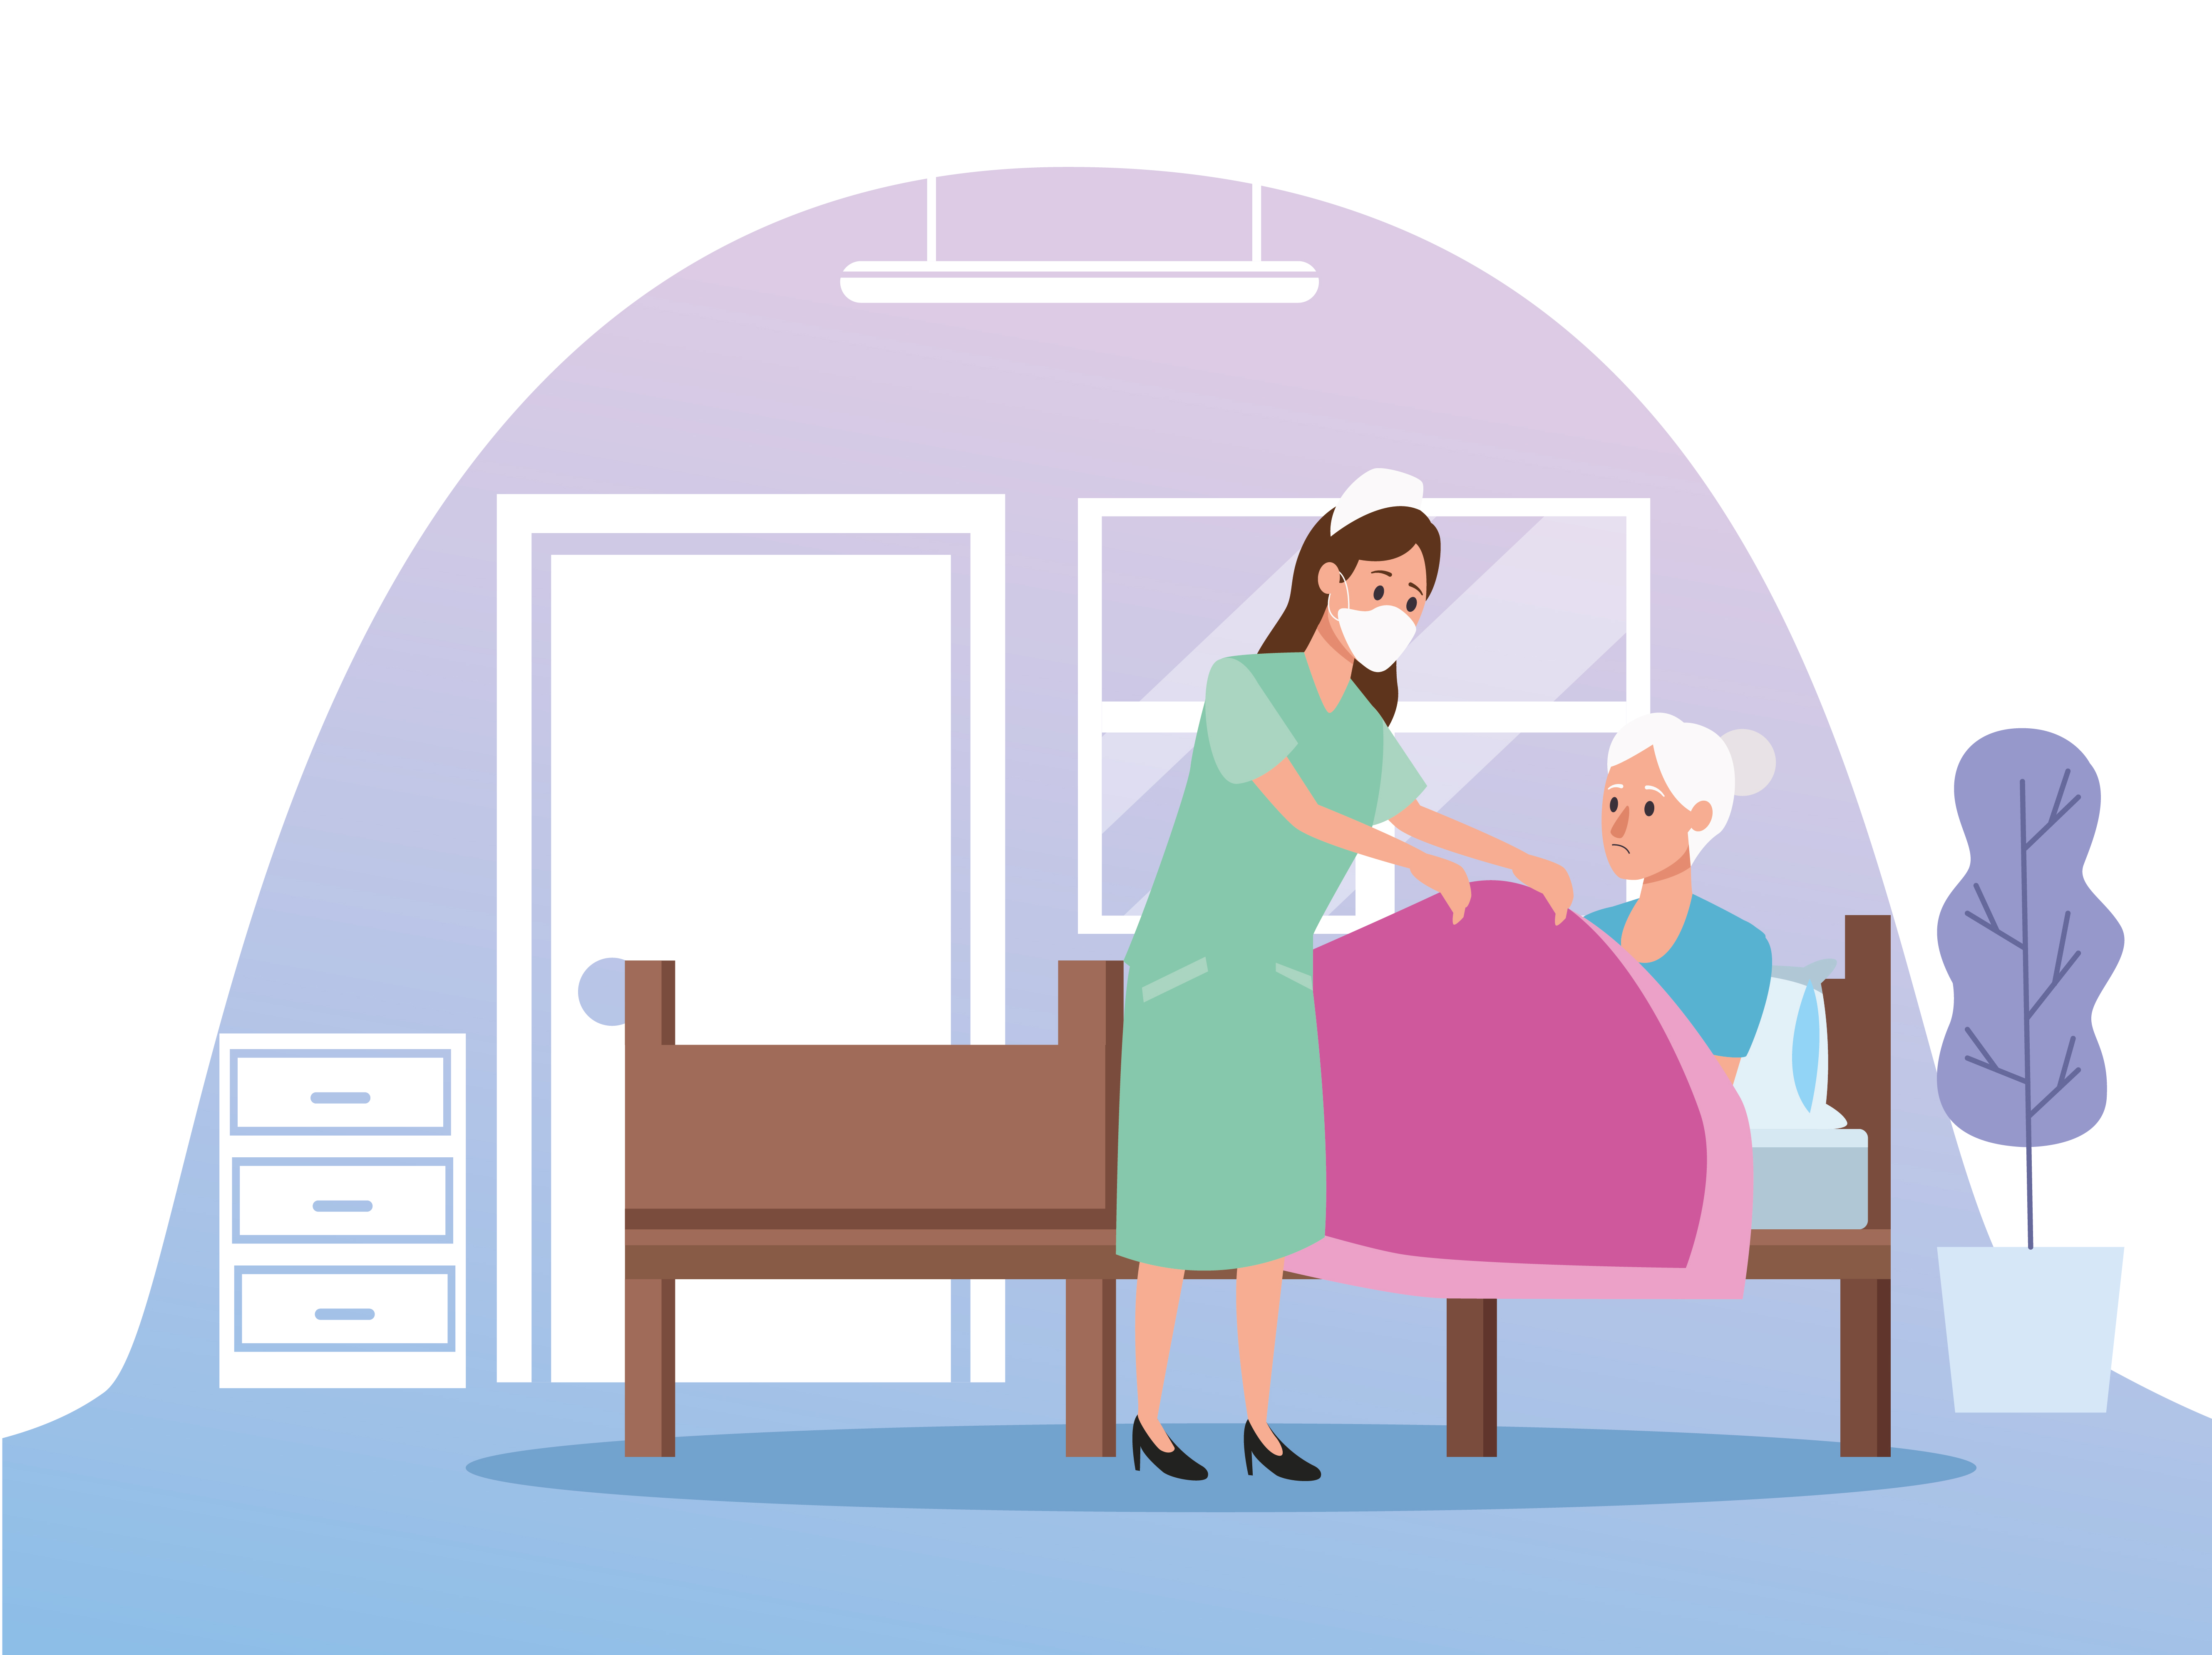 Nurse protecting elderly woman person characters vector